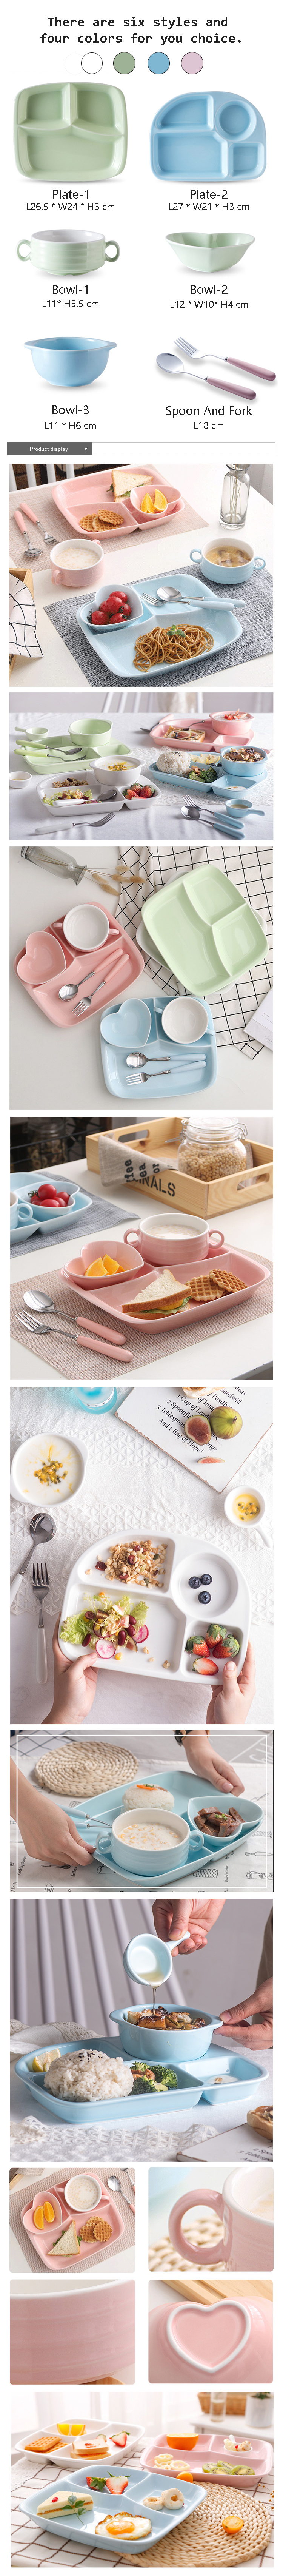 Ceramic Kids Dinner Set Free Combination Porcelain Dinnerware Sets Hot Sale Wholesale Ceramic Plate Bowl Fork Spoon